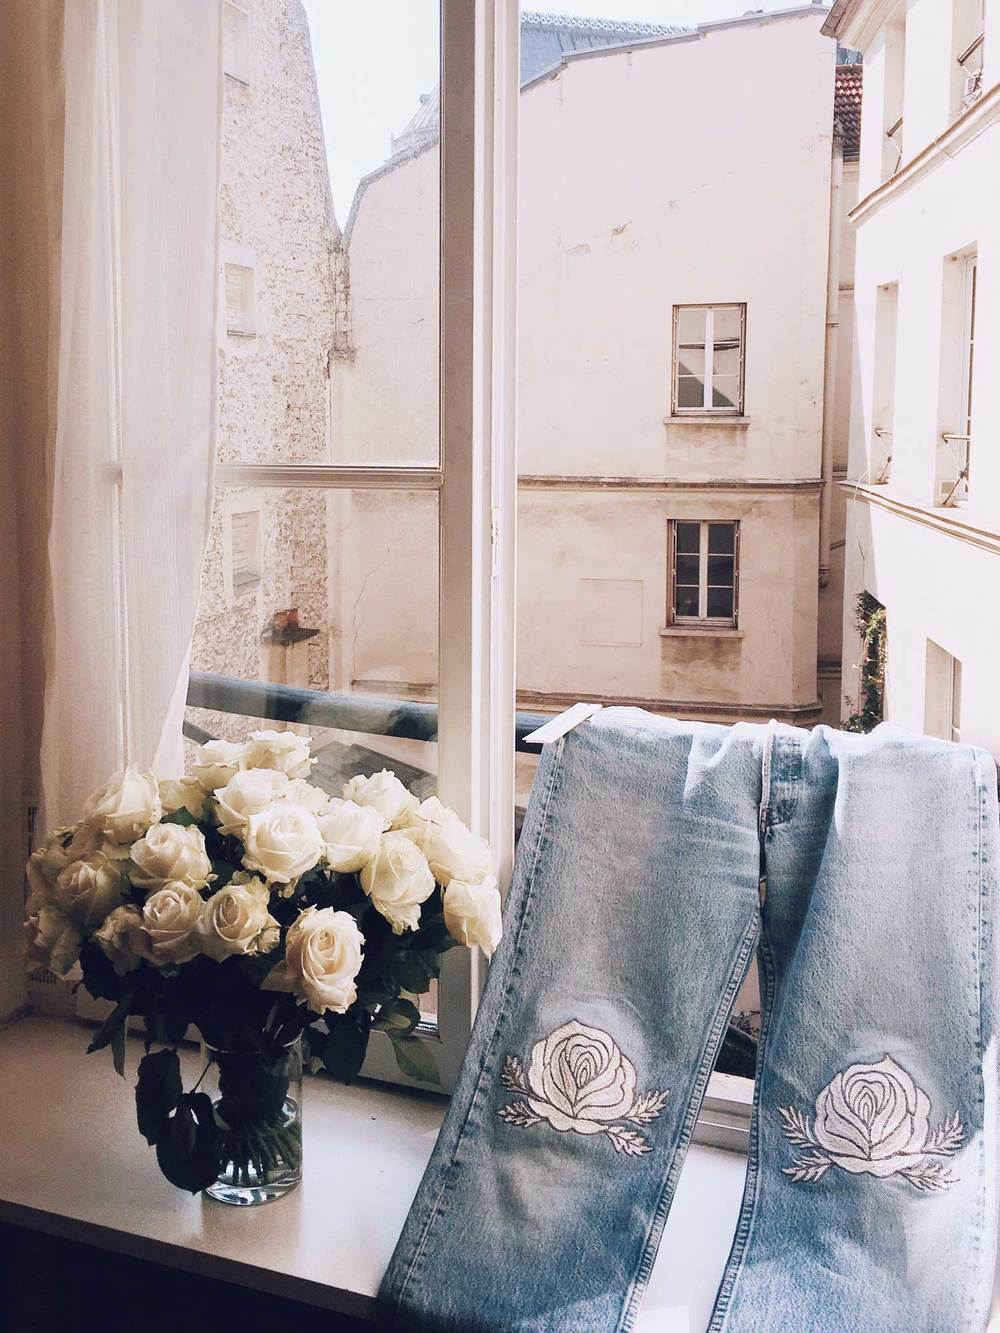 Our Song of the West denim, white roses, and our Parisian courtyard - @blissandmischief